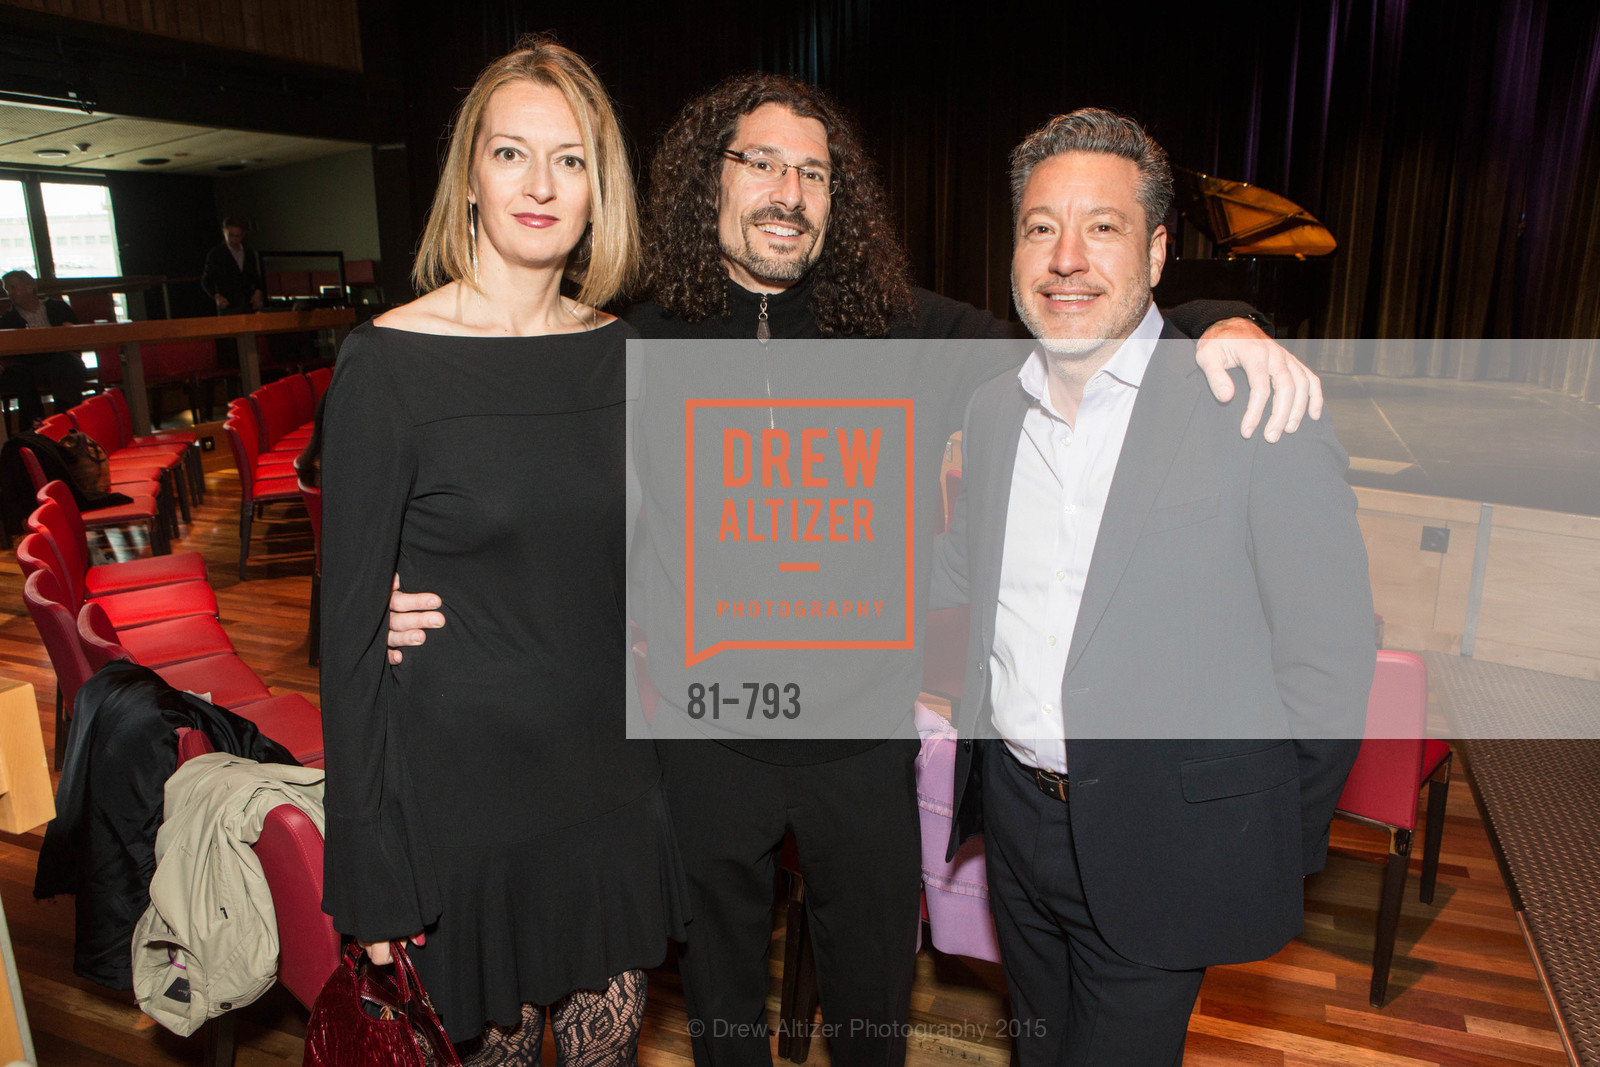 Ileana Facchini, Mitch Shapiro, Carlos Ramirez, SF BRAVO CLUB Sneak Peek at the EXPLORATORIUM, US, April 23rd, 2015,Drew Altizer, Drew Altizer Photography, full-service agency, private events, San Francisco photographer, photographer california